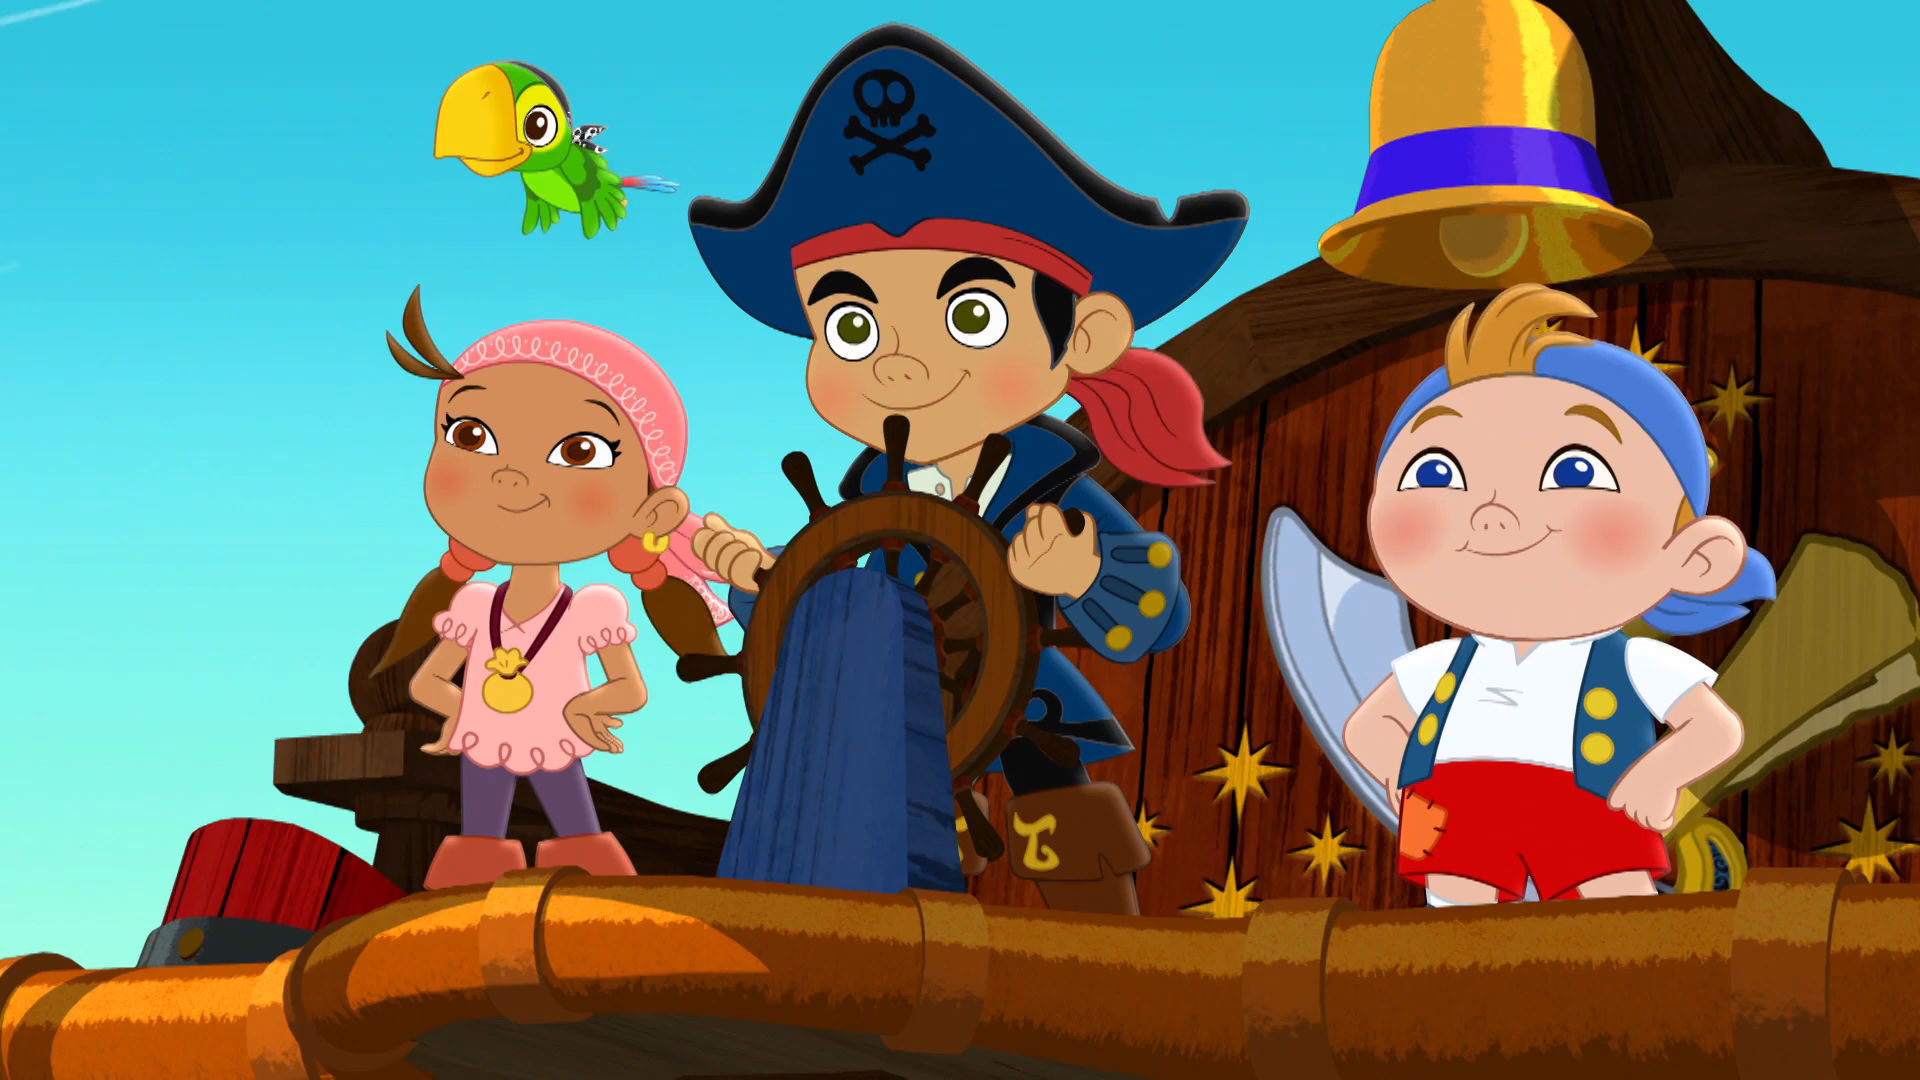 Captain Jake and the Never Land Pirates - There's a new captain on deck!